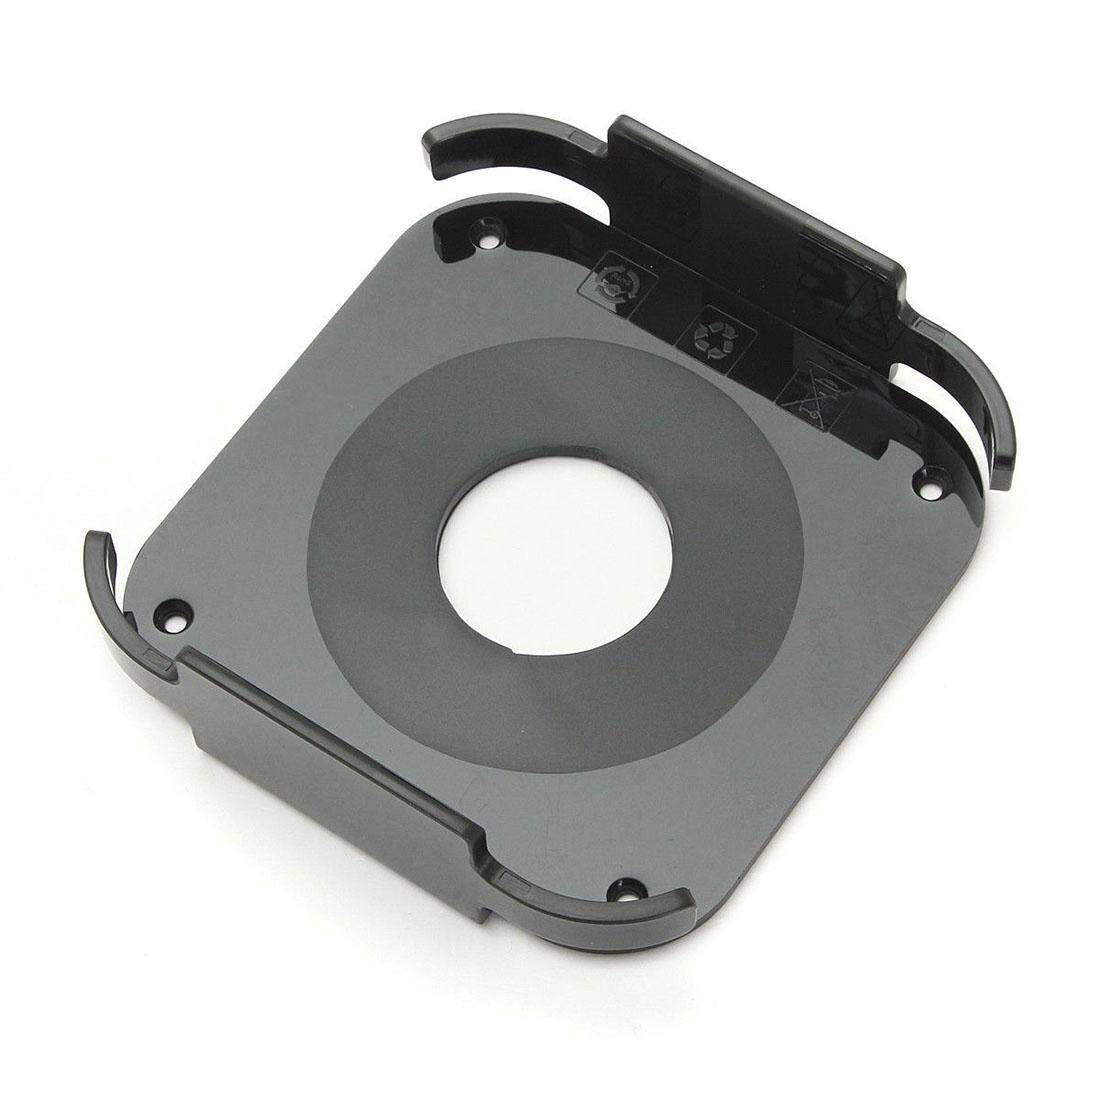 Wall Mount Case Bracket Sticky Holder for Apple TV 2/3 & AirPort Express Series